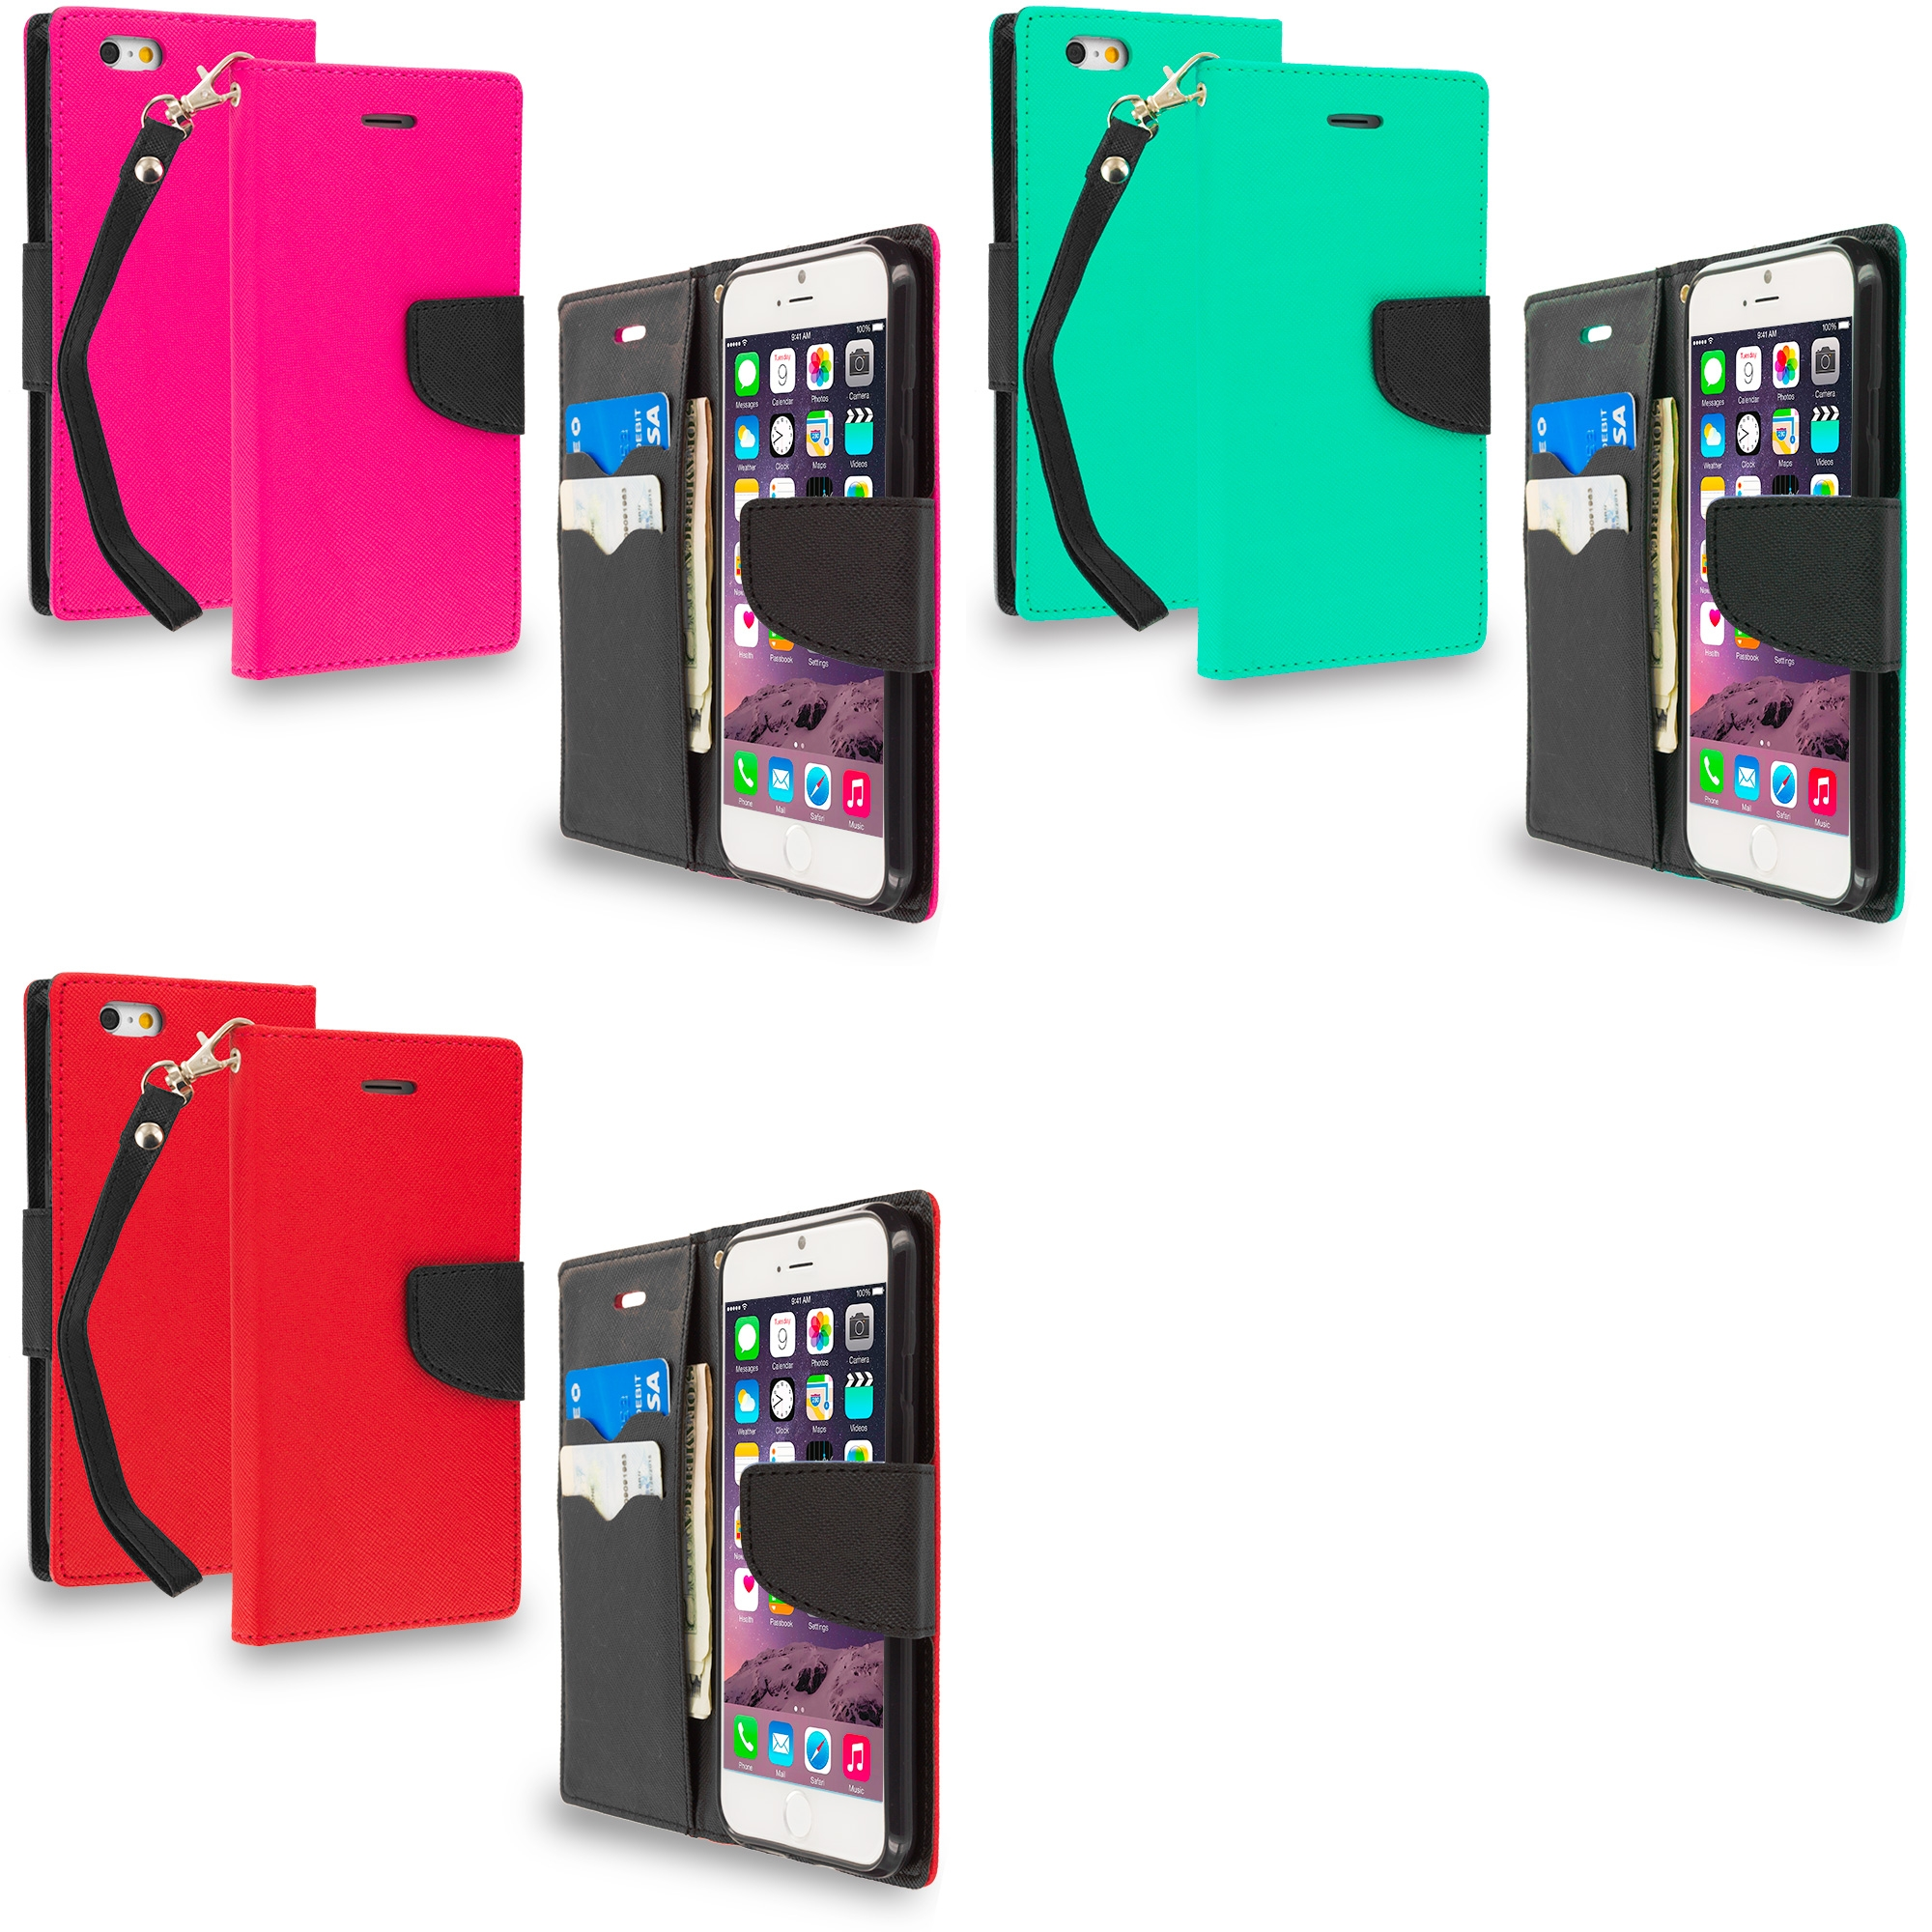 Apple iPhone 6 6S (4.7) 3 in 1 Combo Bundle Pack - Leather Flip Wallet Pouch TPU Case Cover with ID Card Slots